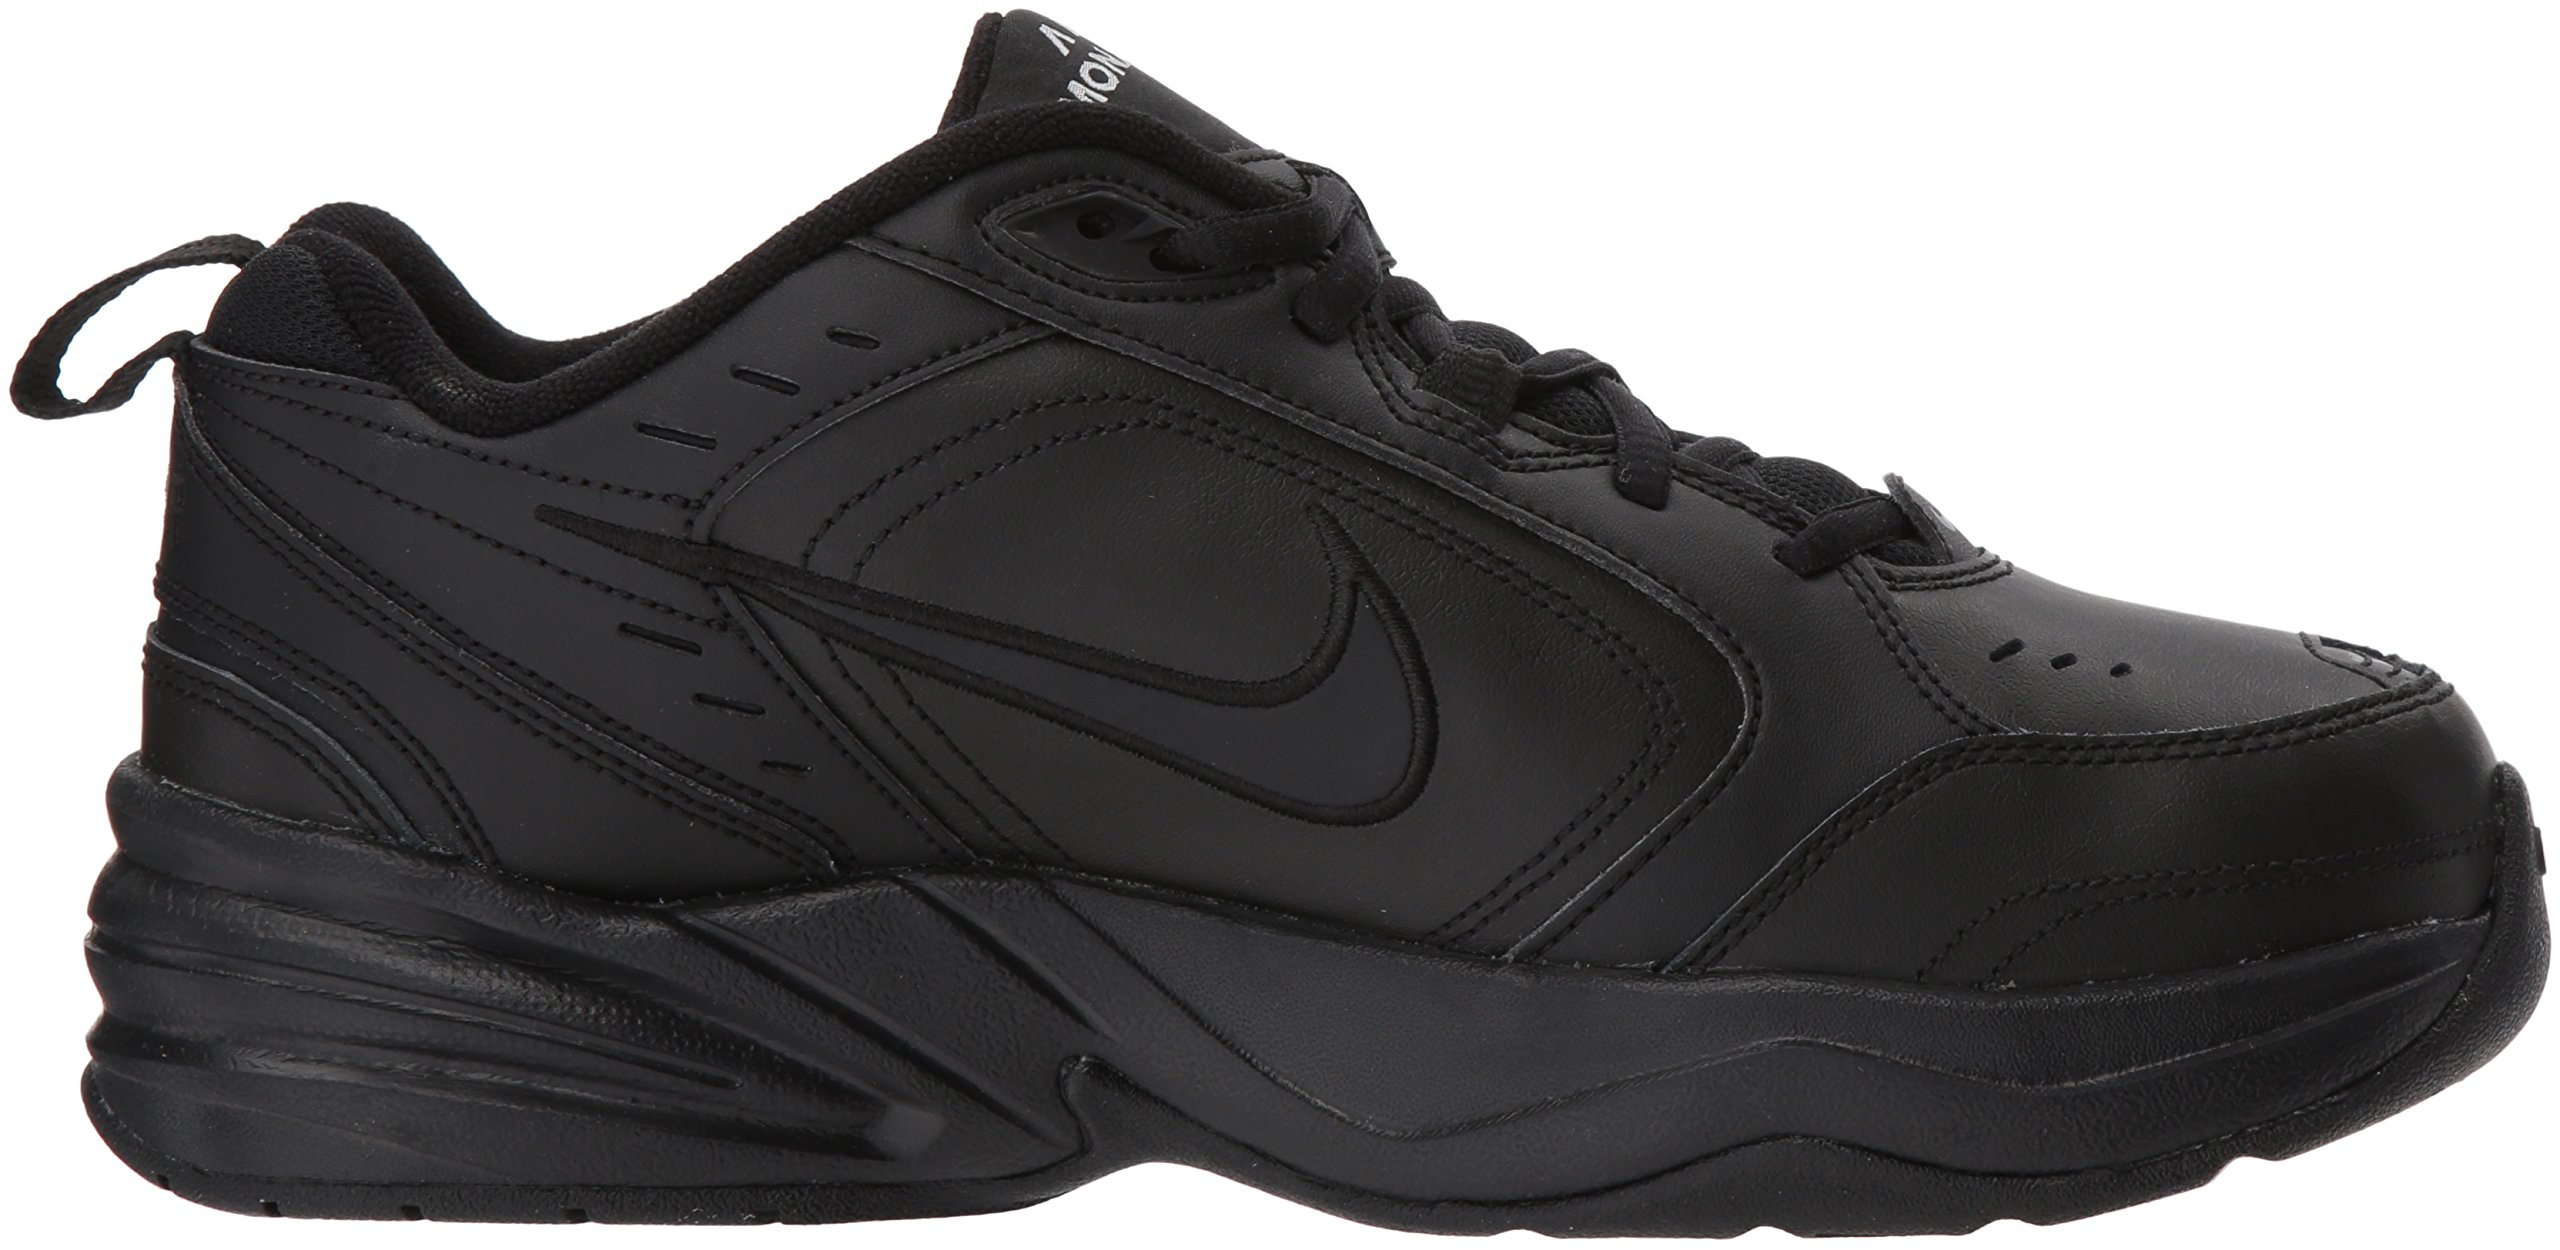 NIKE AIR MONARCH IV (MENS) - 6 Black/Black by Nike (Image #13)